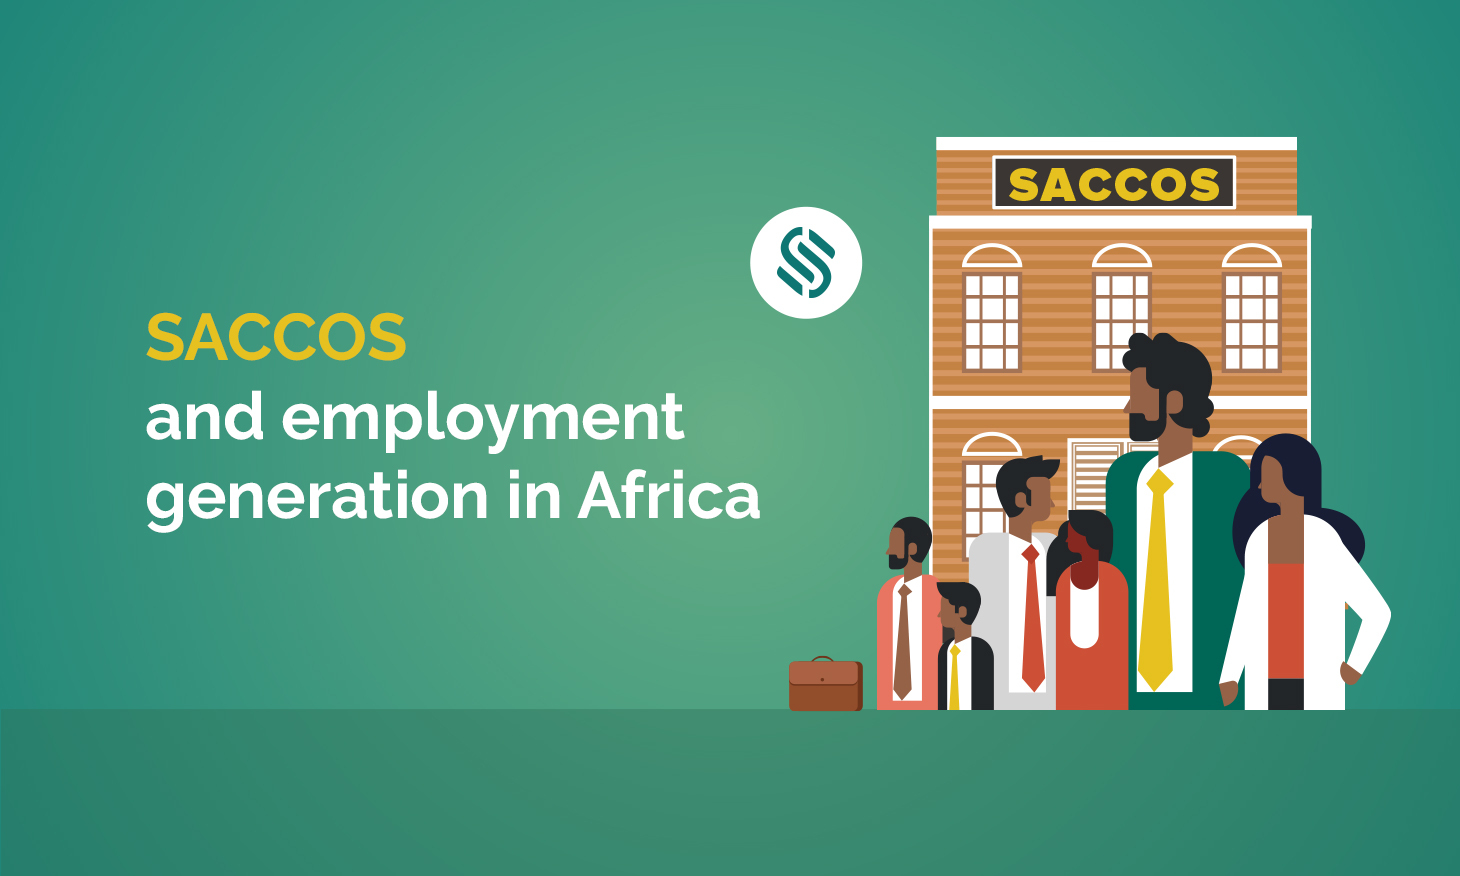 SACCOS and Employment in Africa